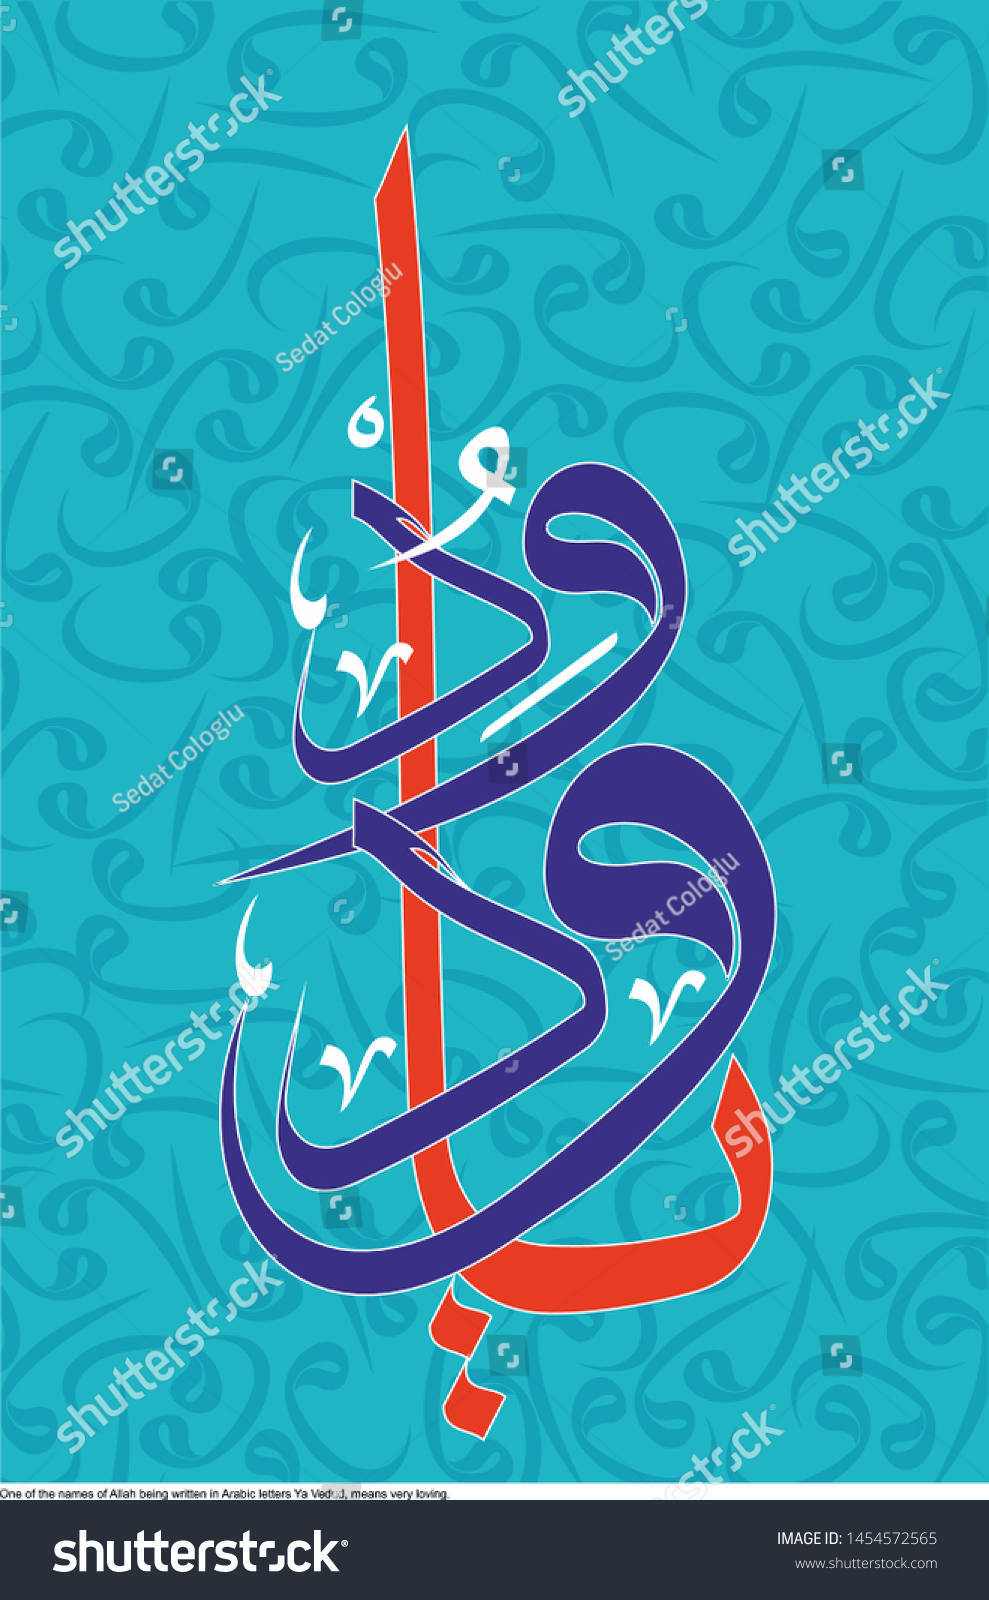 One of the names of Allah being written in Arabic letters